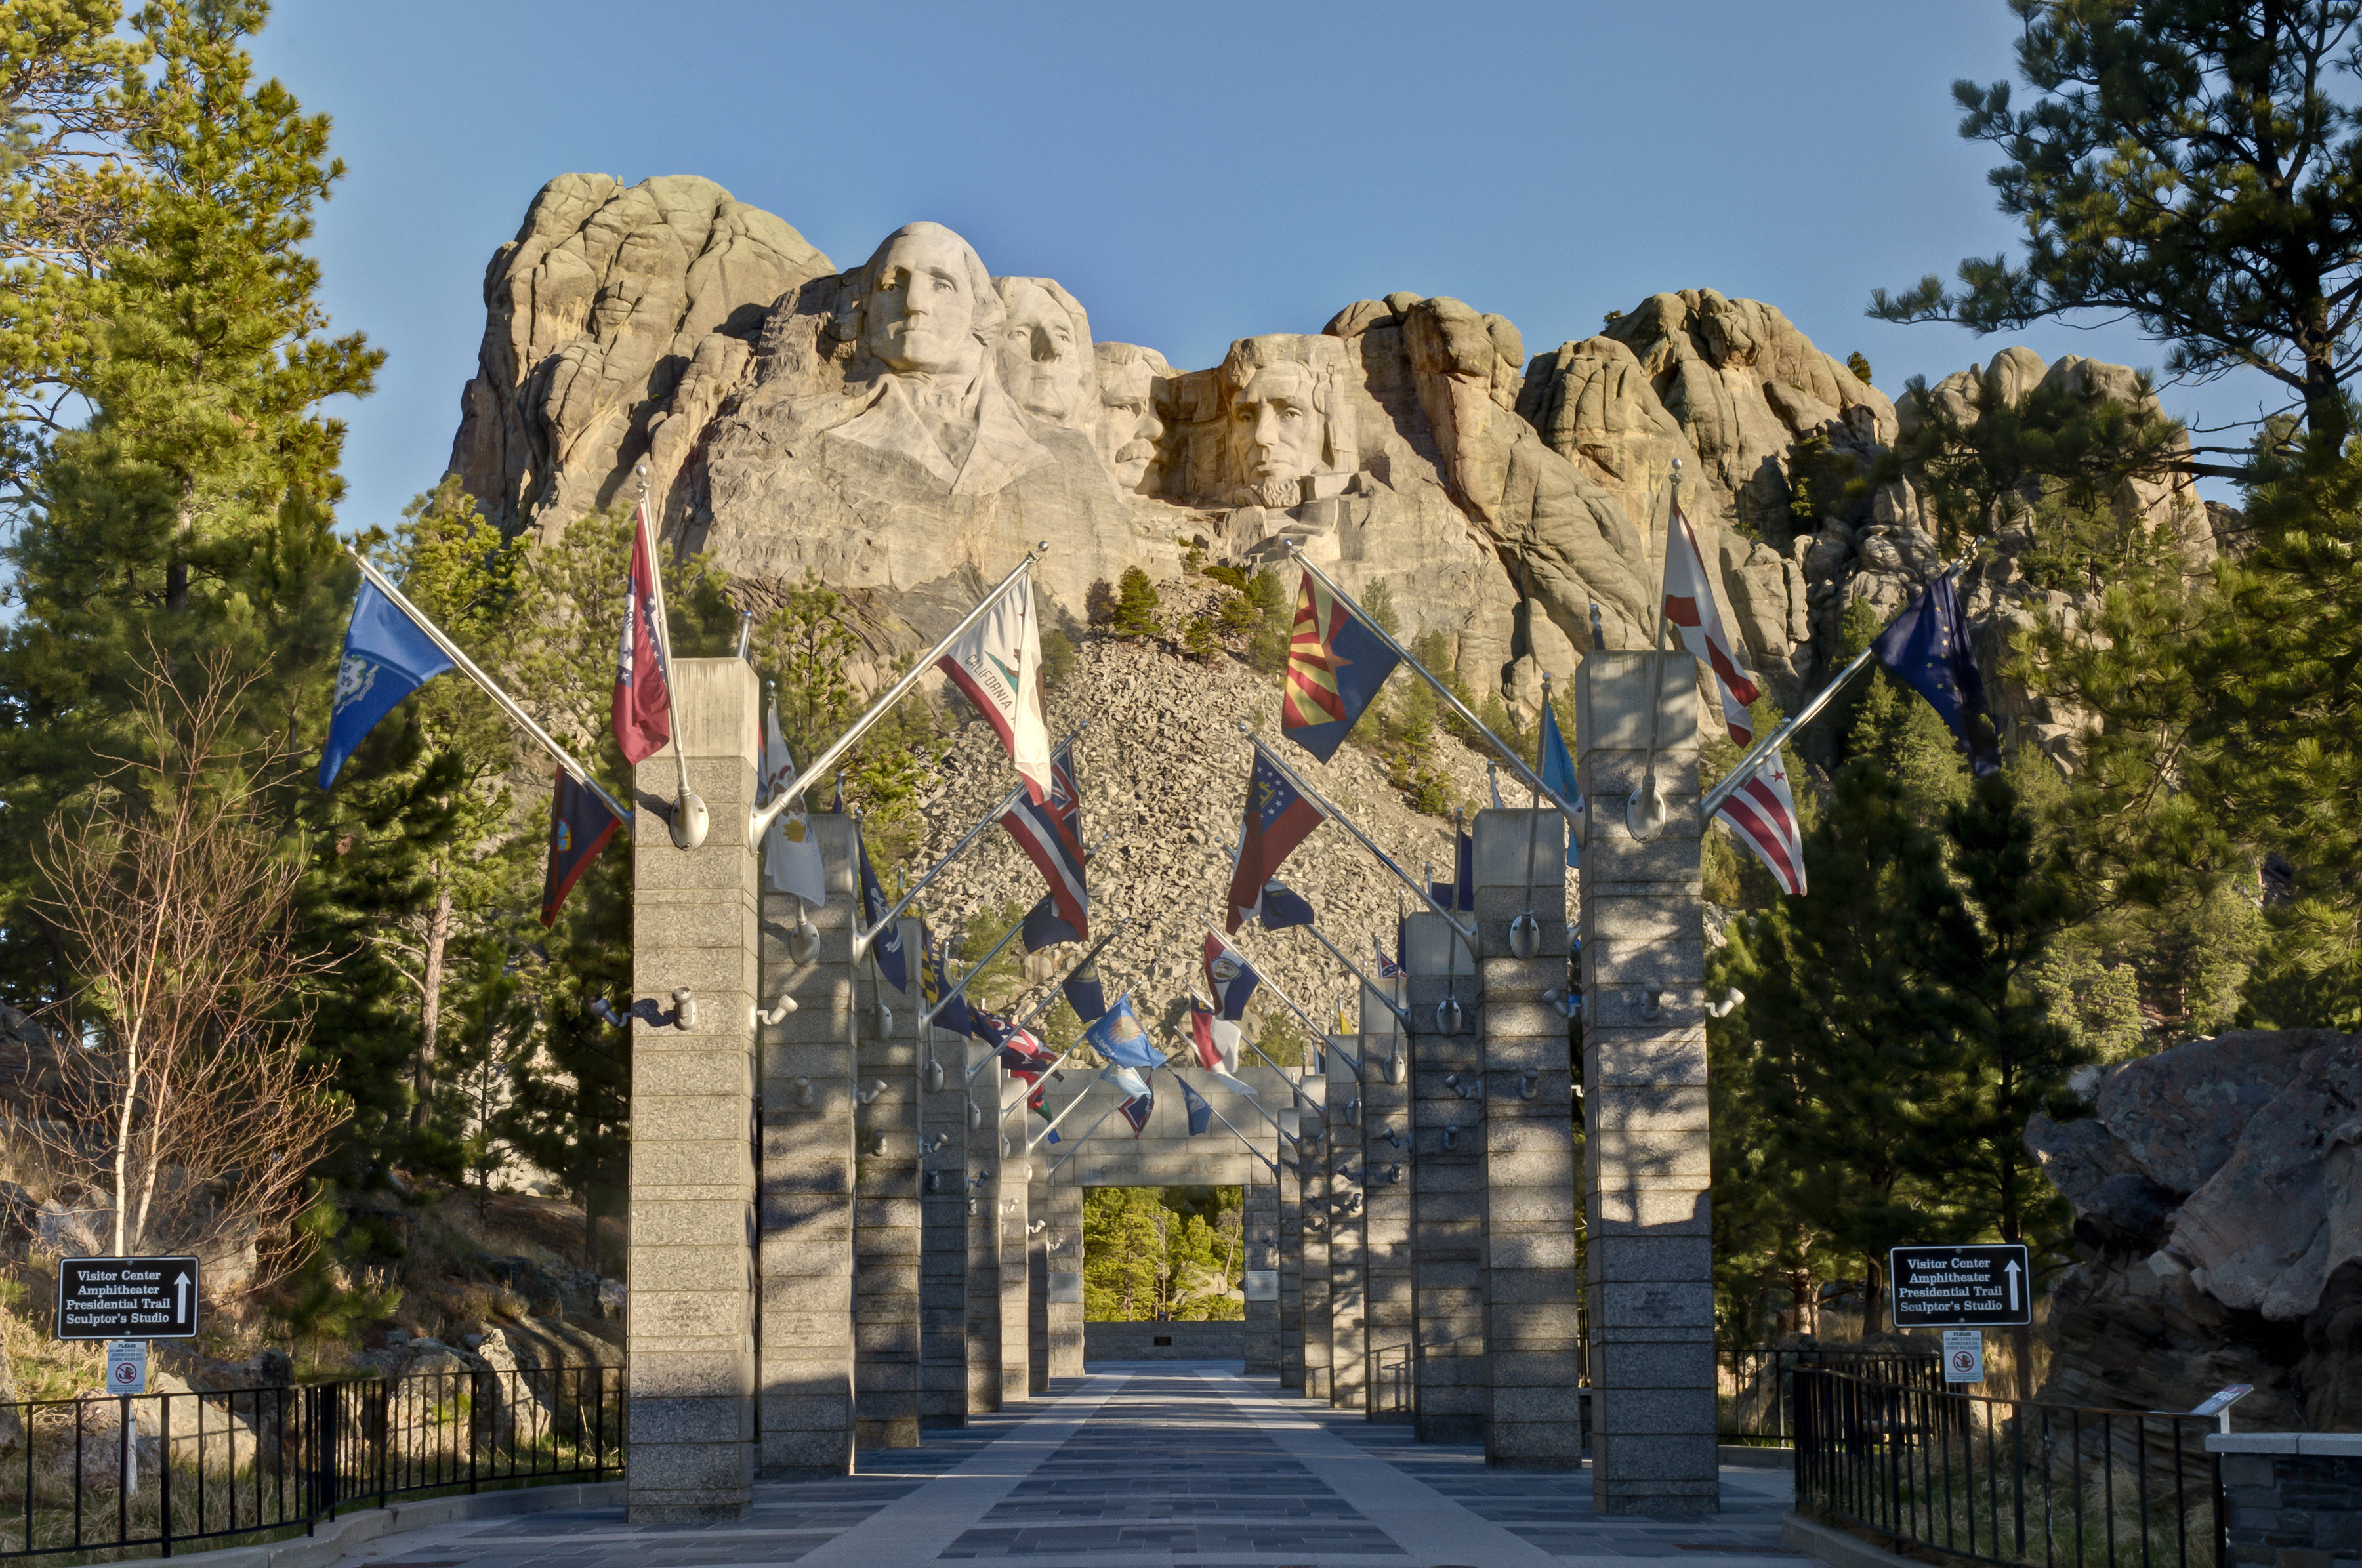 Sitting Bull Crystal Caverns Mt. Rushmore and the Black Hills, Badlands & Black Hills of South Dakota - T&A Tours Motorcoach ...